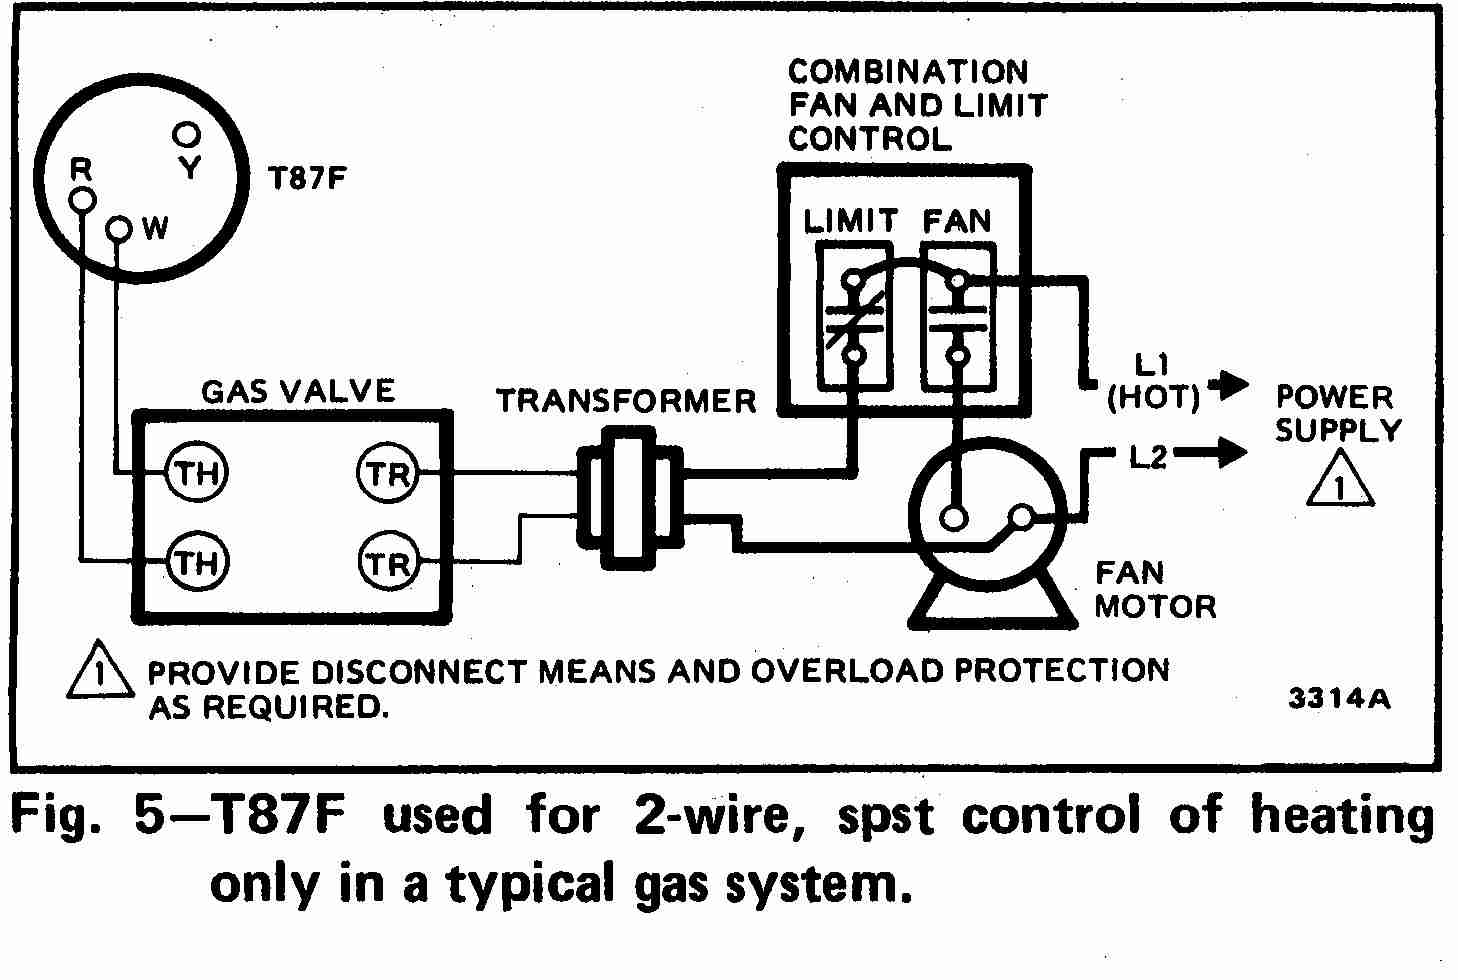 TT_T87F_0002_2Wg_DJF guide to wiring connections for room thermostats wiring diagram emerson digital thermostat at gsmportal.co